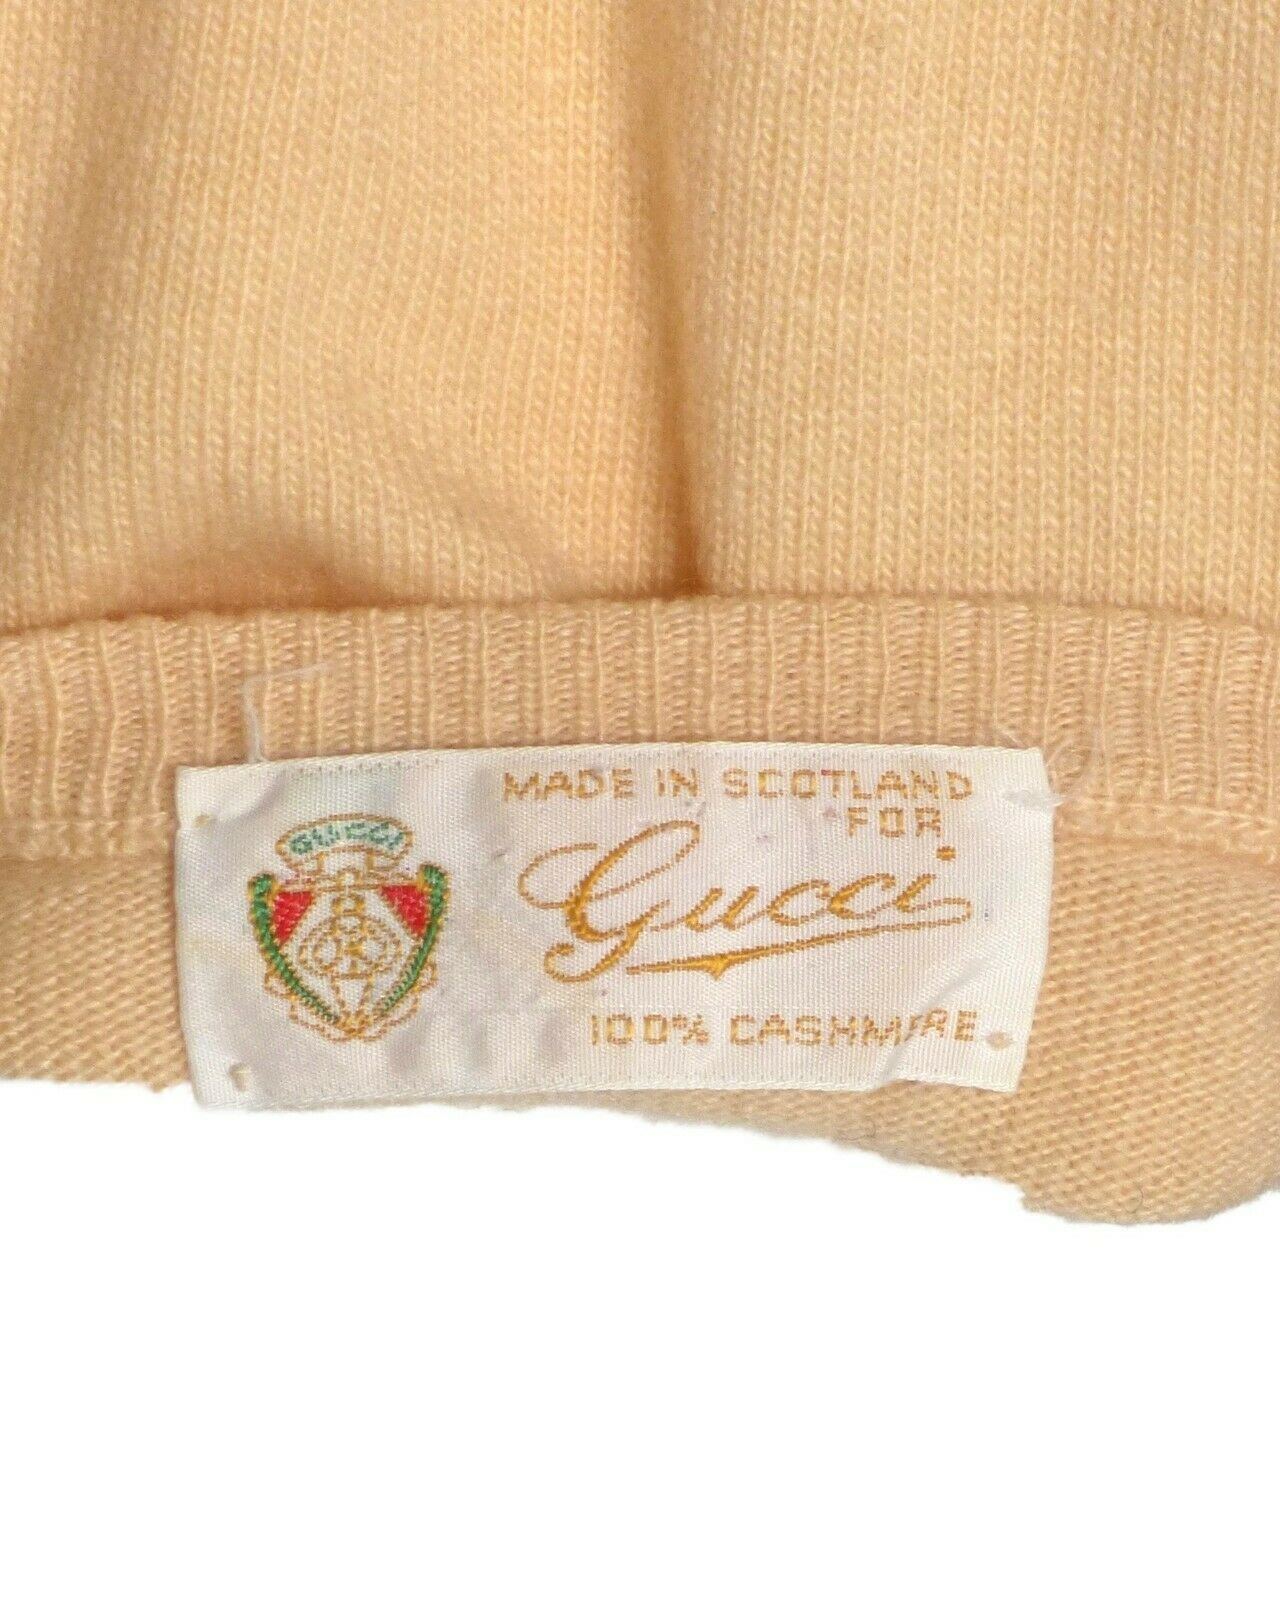 GUCCI-1970s Cashmere Sweater, Size-8 - image 5